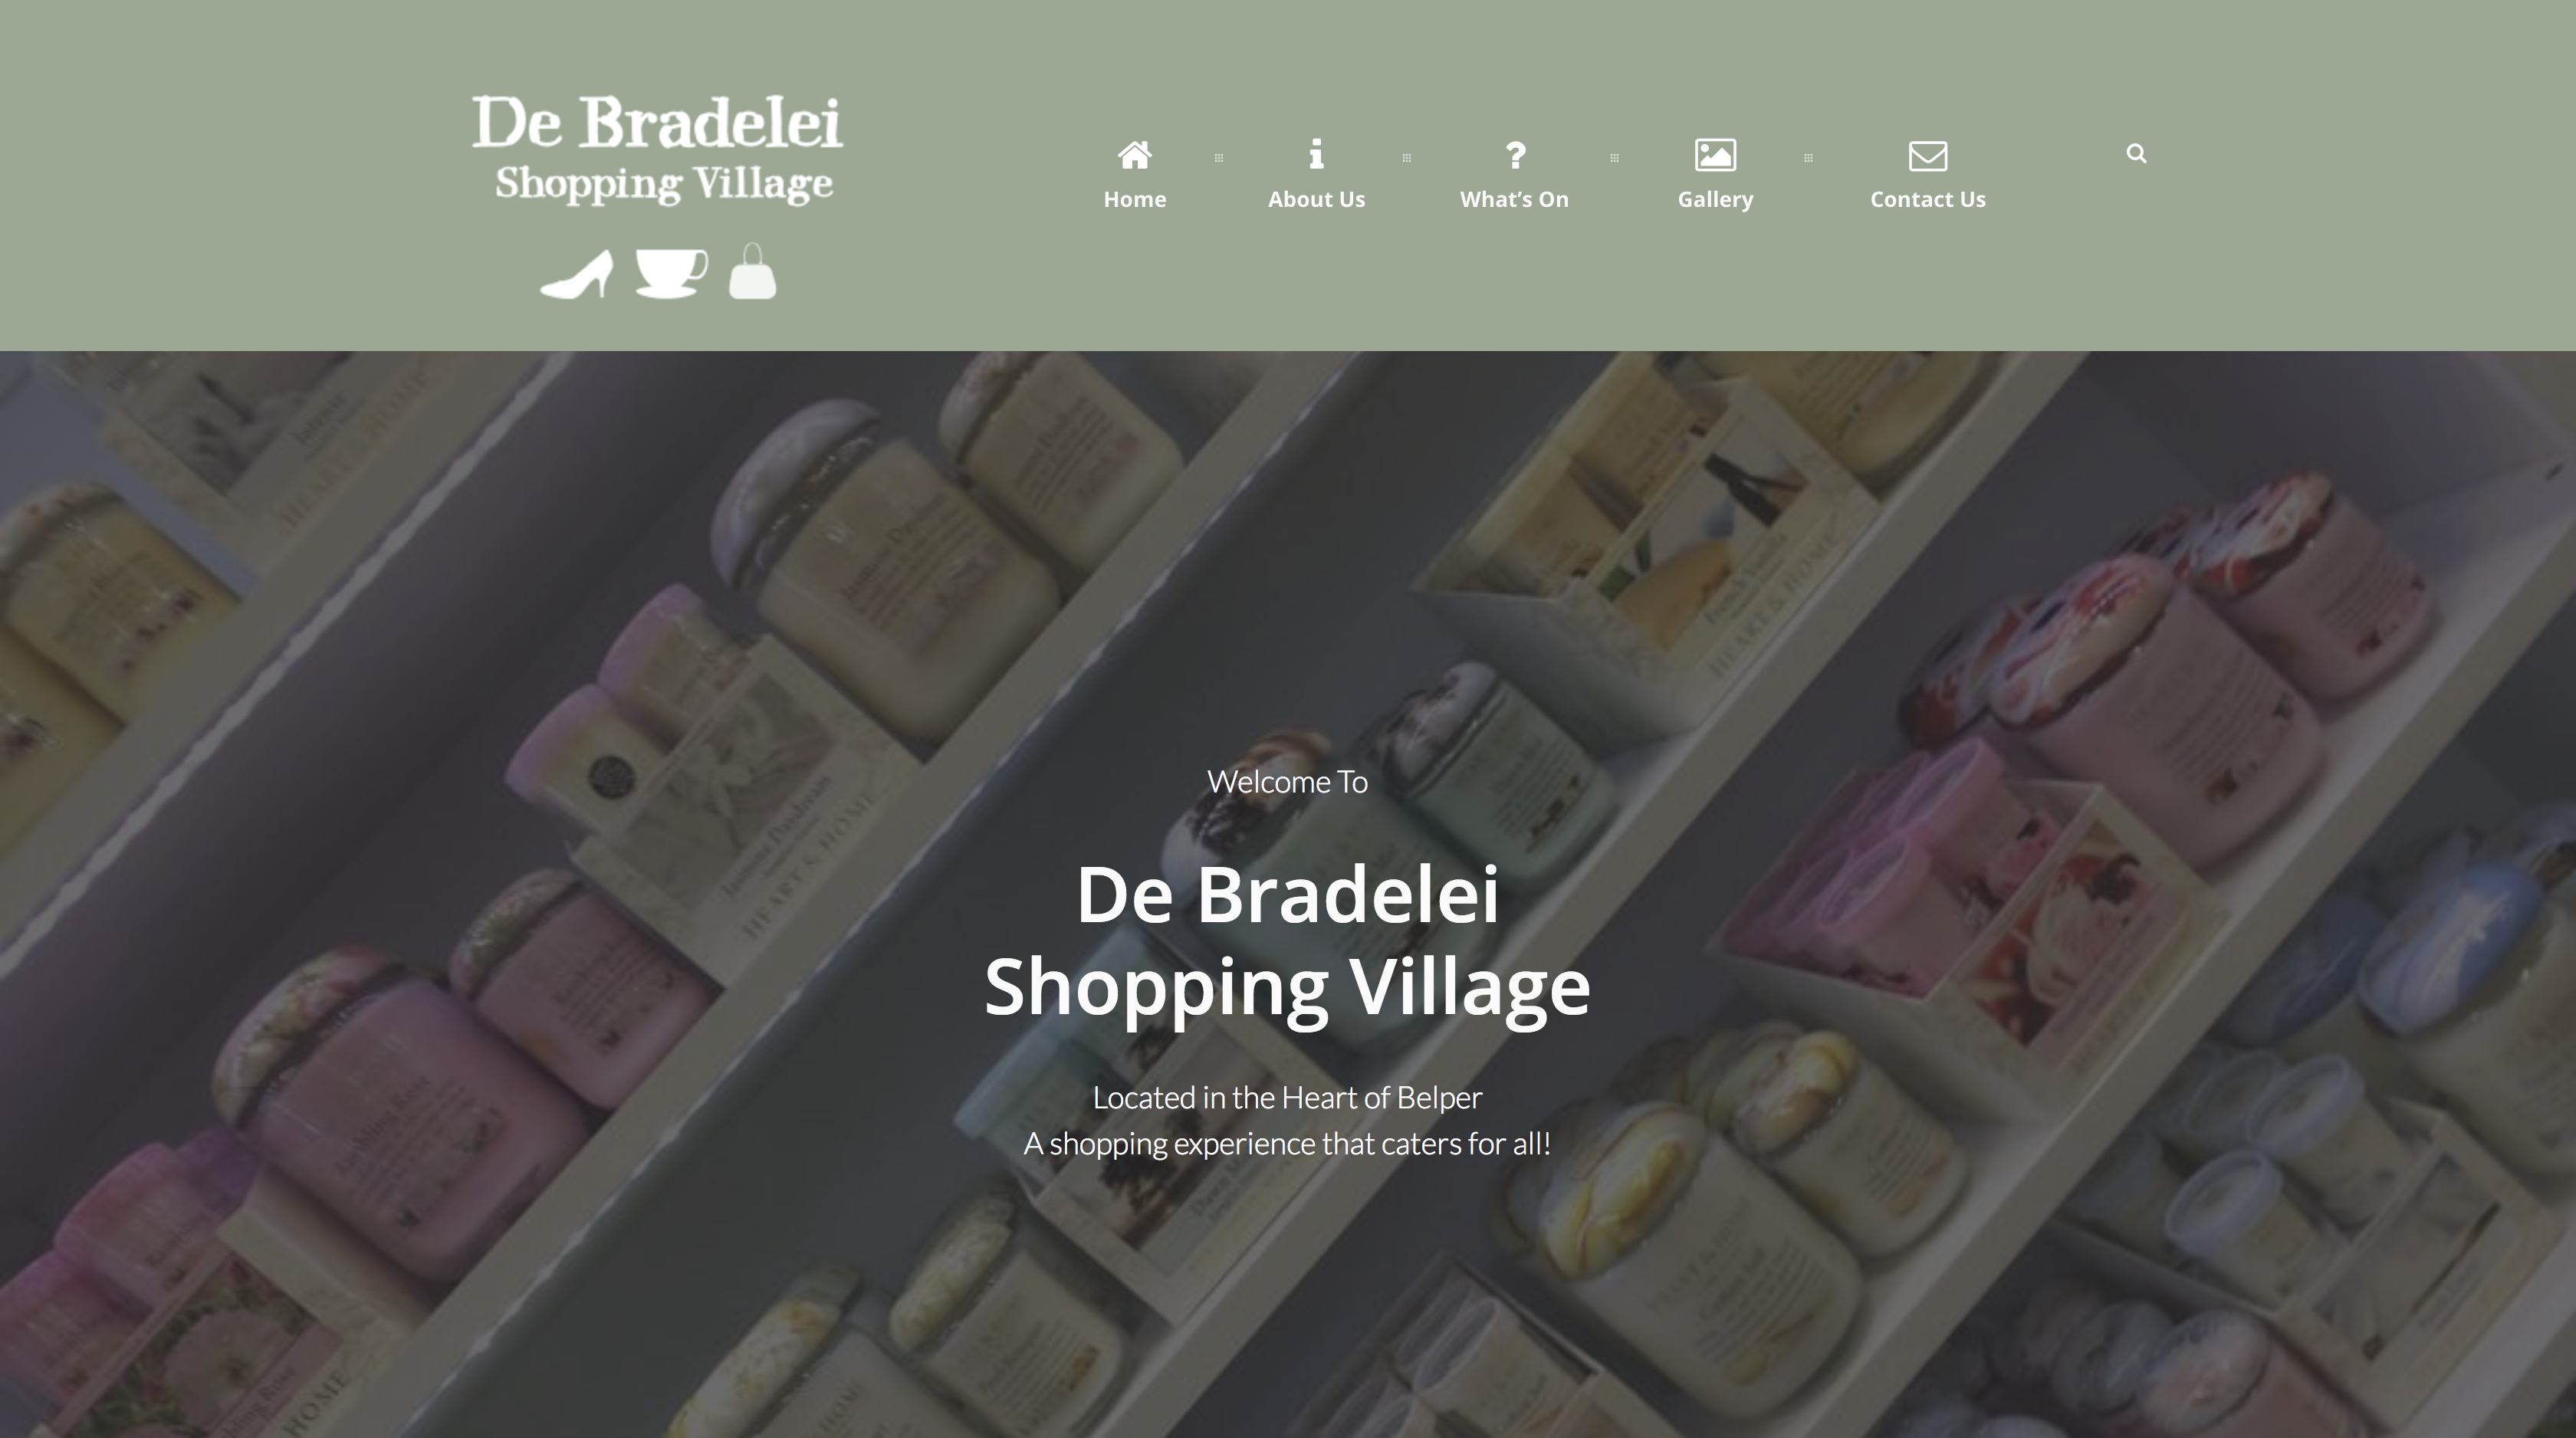 de bradelei outlets belper website design by High Heel Creative